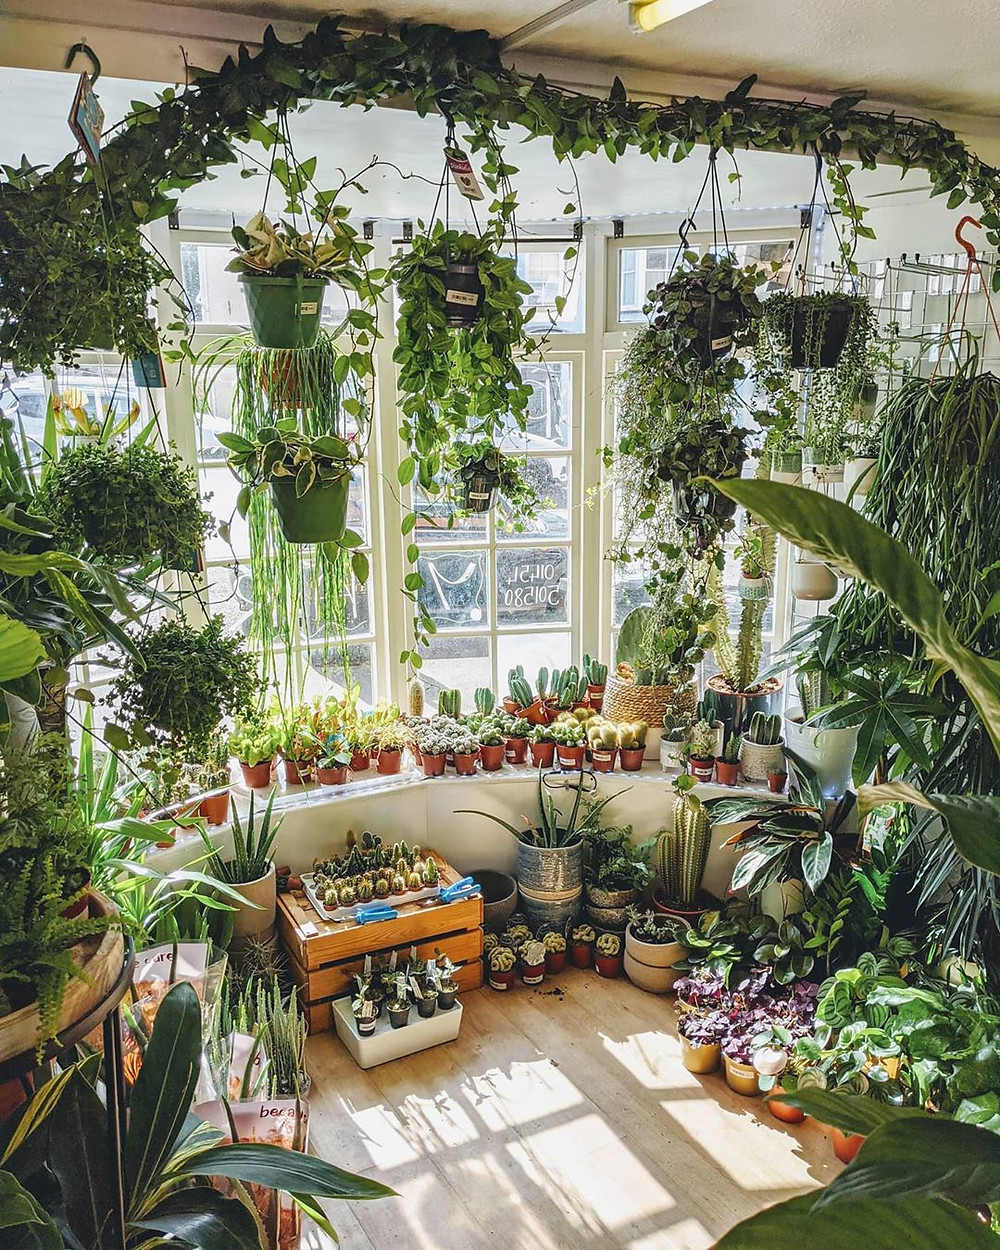 Interior Design Ideas To Make You Happier At Home Living With Houseplants